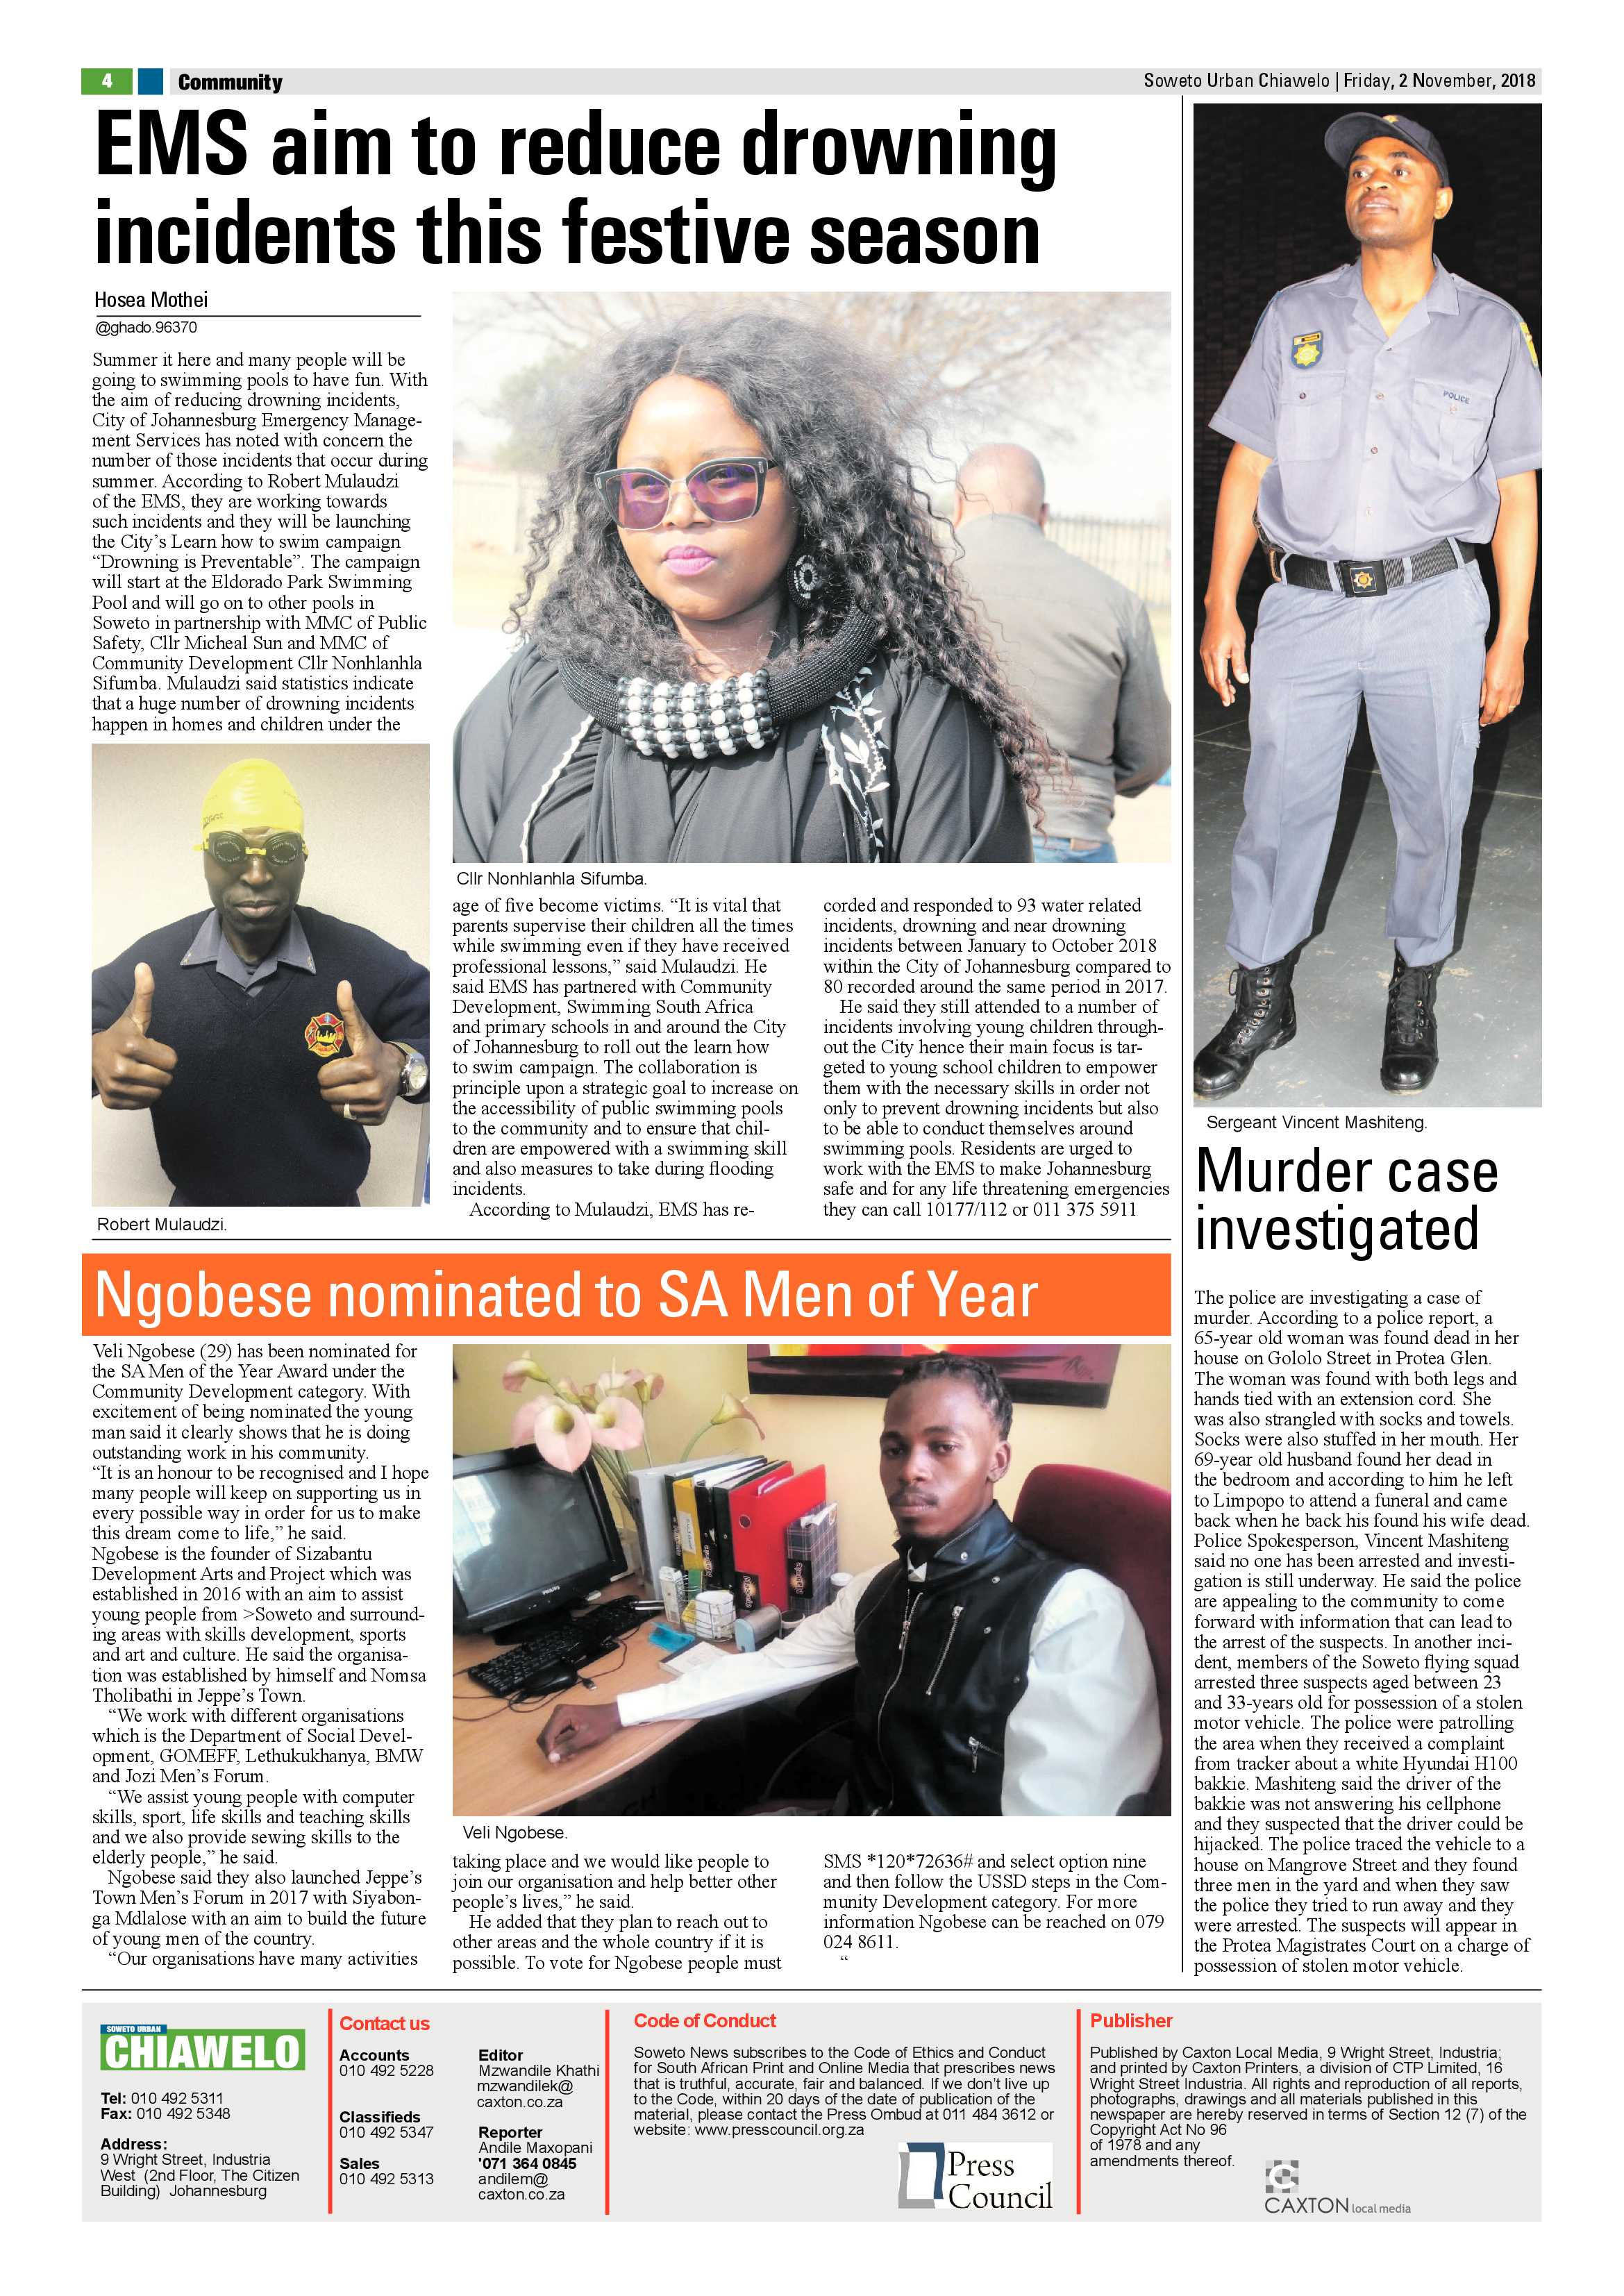 chiawelo-november-2-2018-issue-epapers-page-4